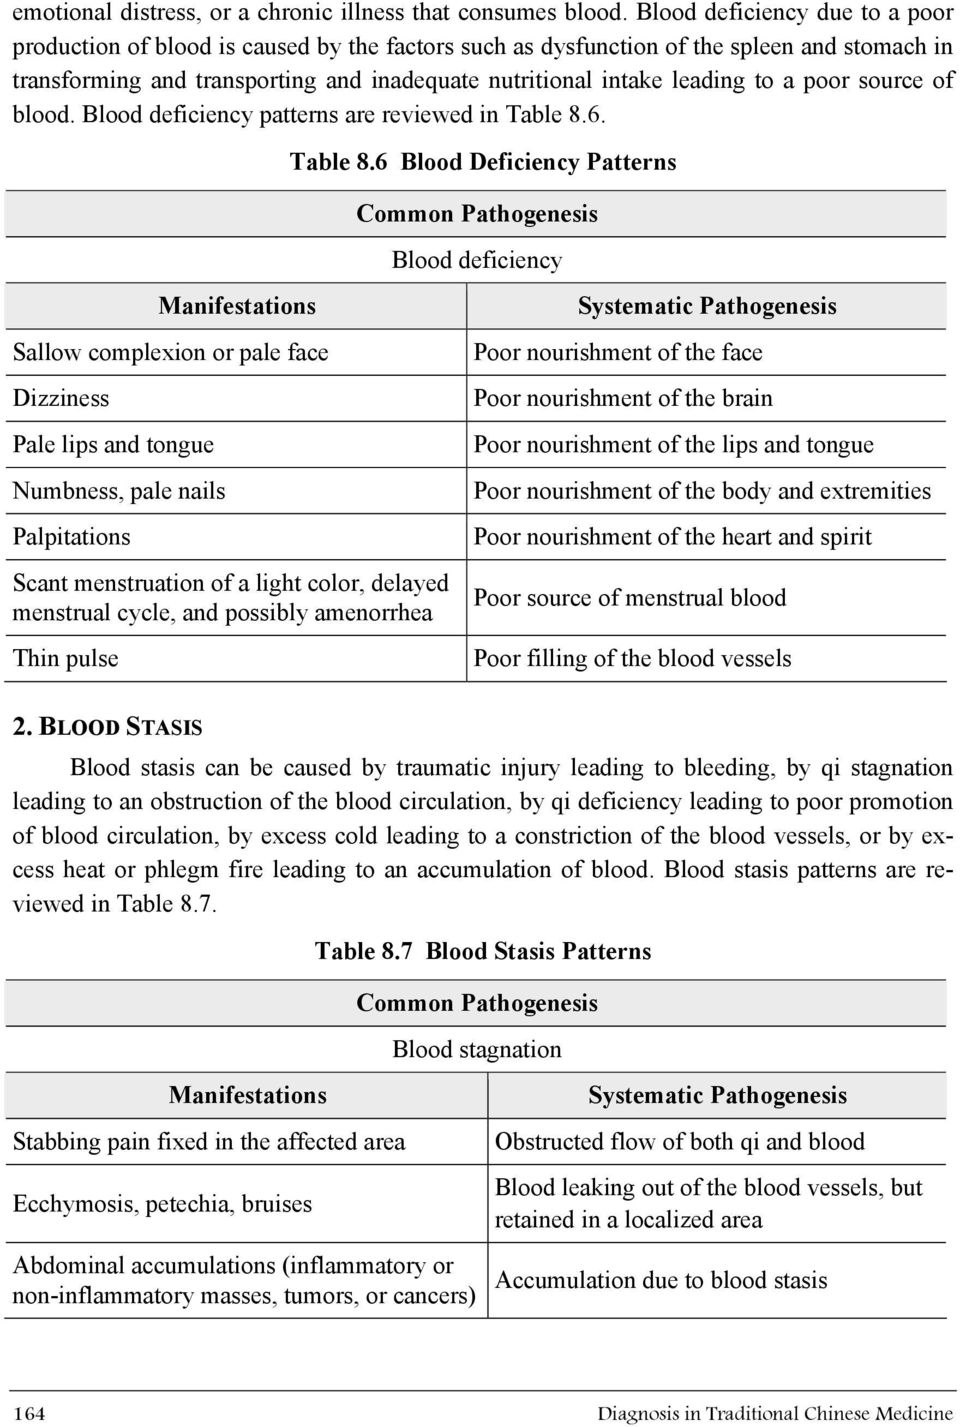 a poor source of blood. Blood deficiency patterns are reviewed in Table 8.